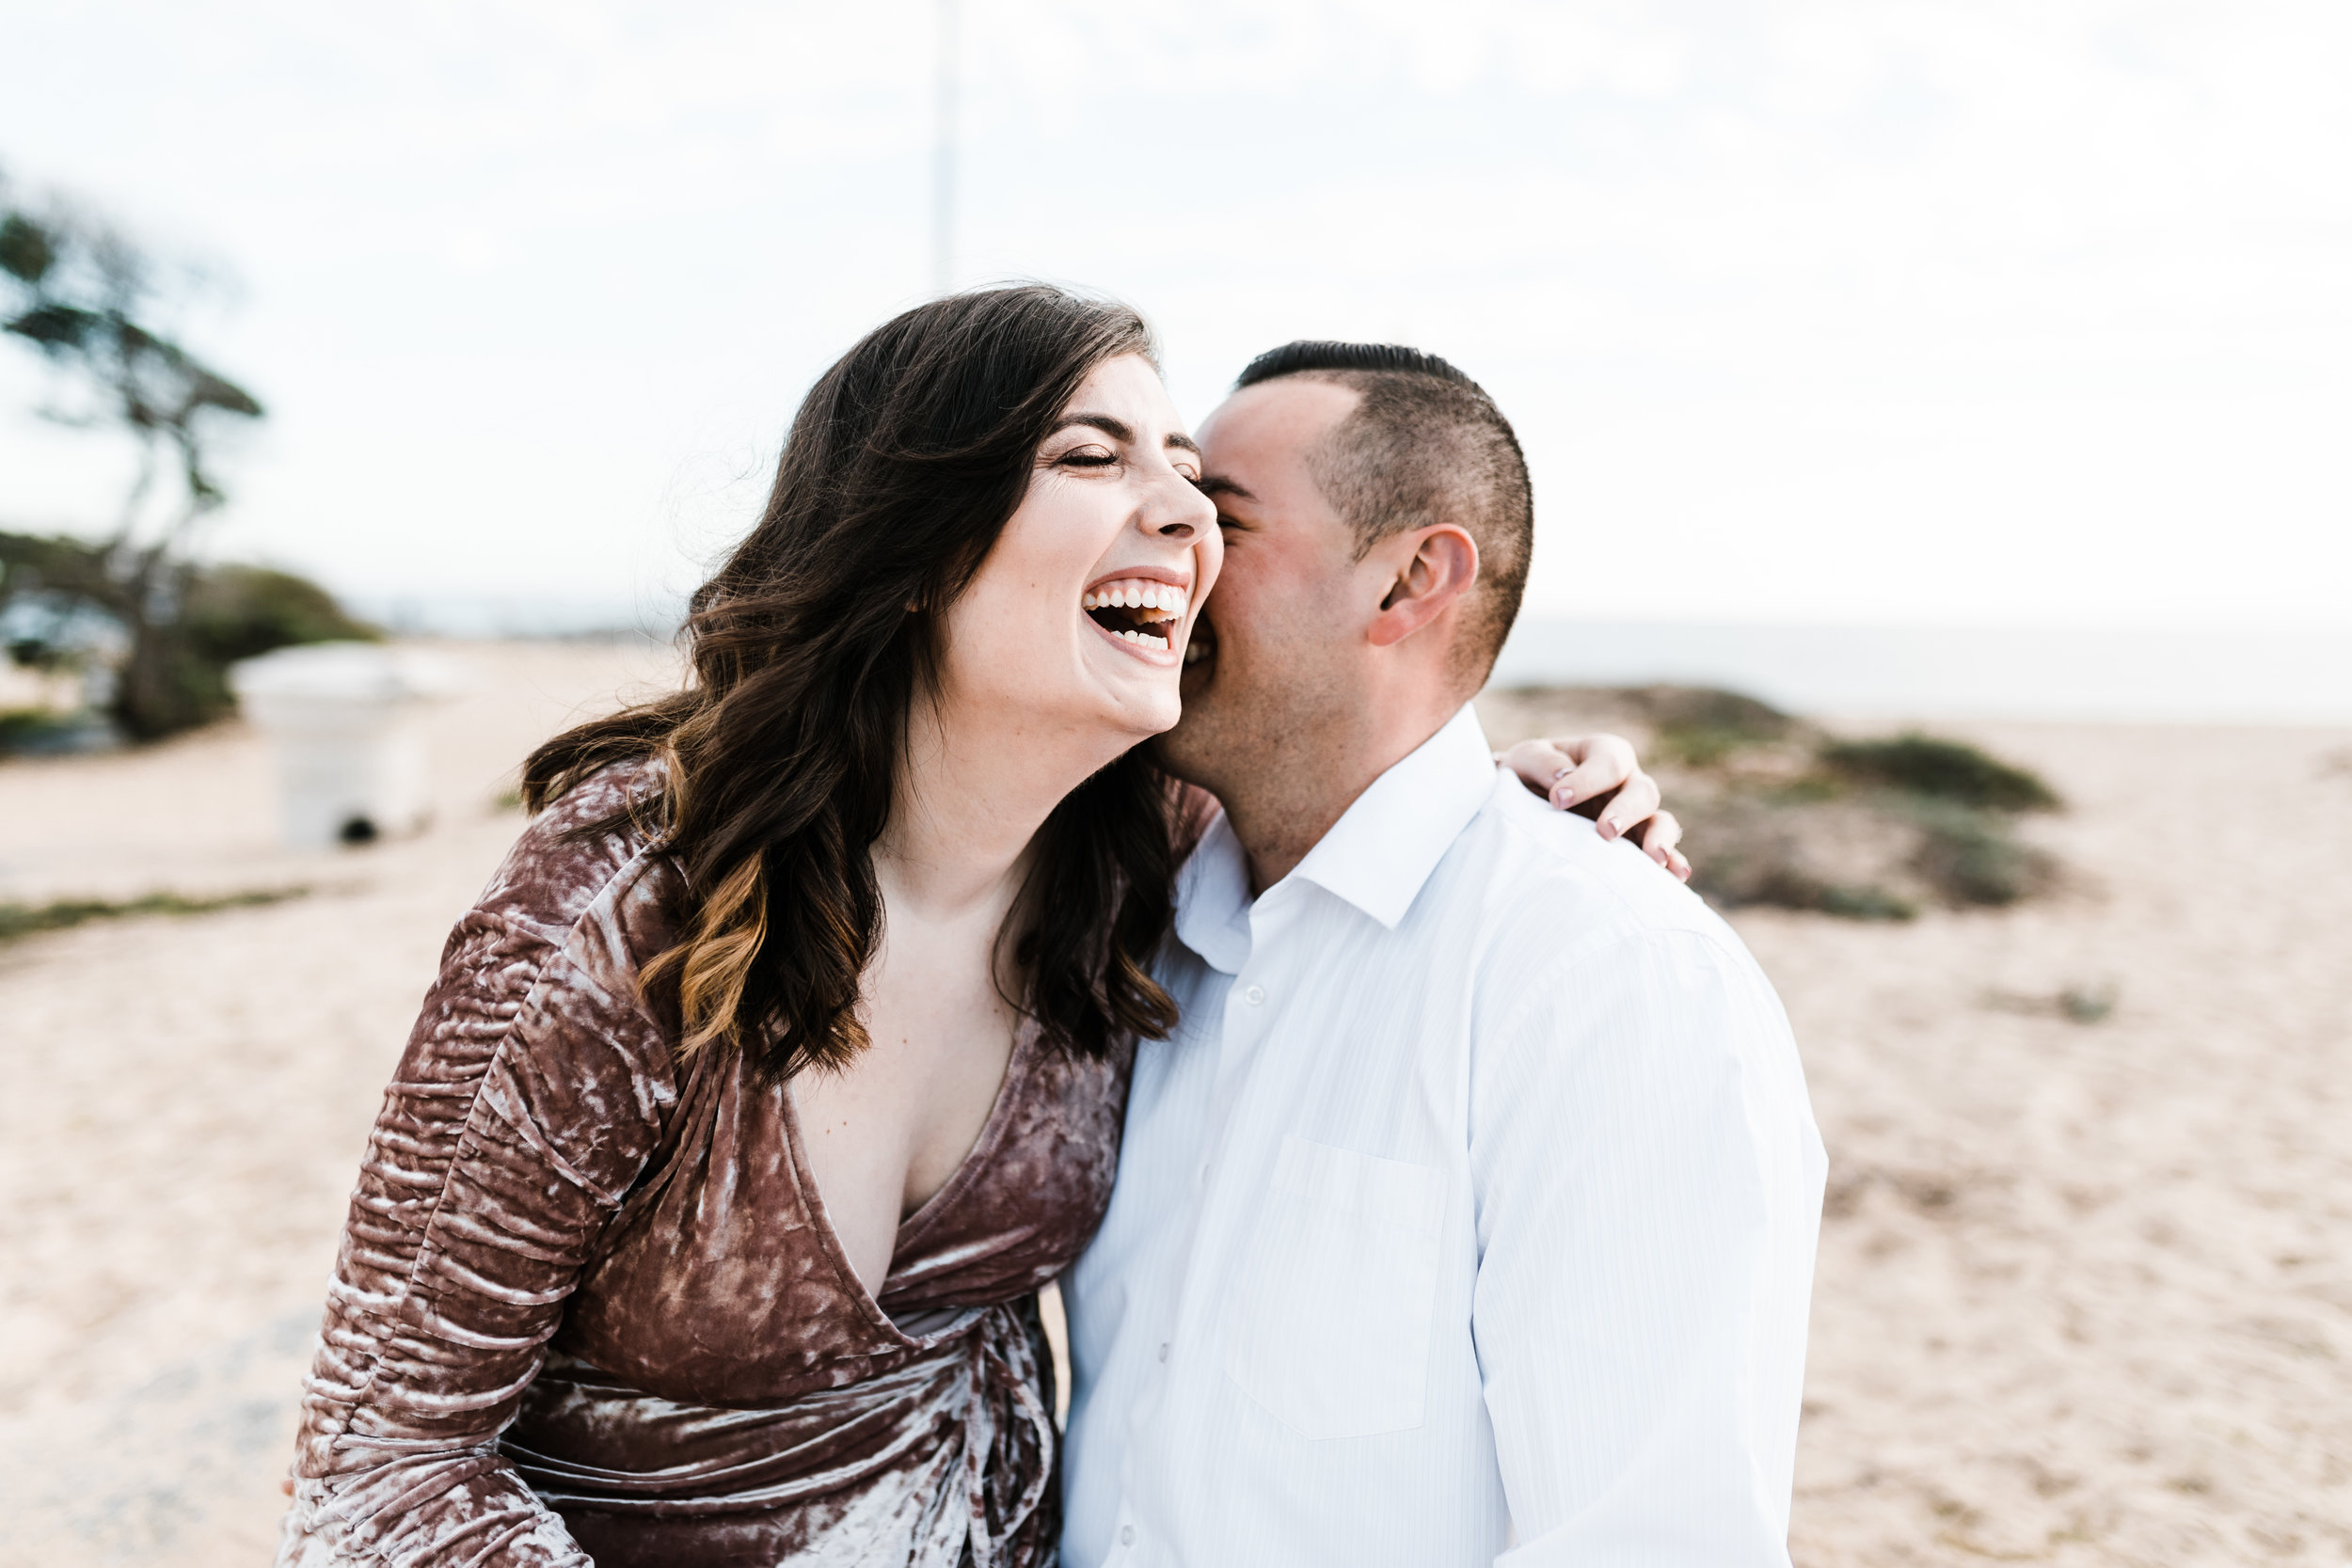 Elise&Julio-The-Wedge-Newport-Beach-CRM-Media-Southern-California-Wedding-Photographer-11